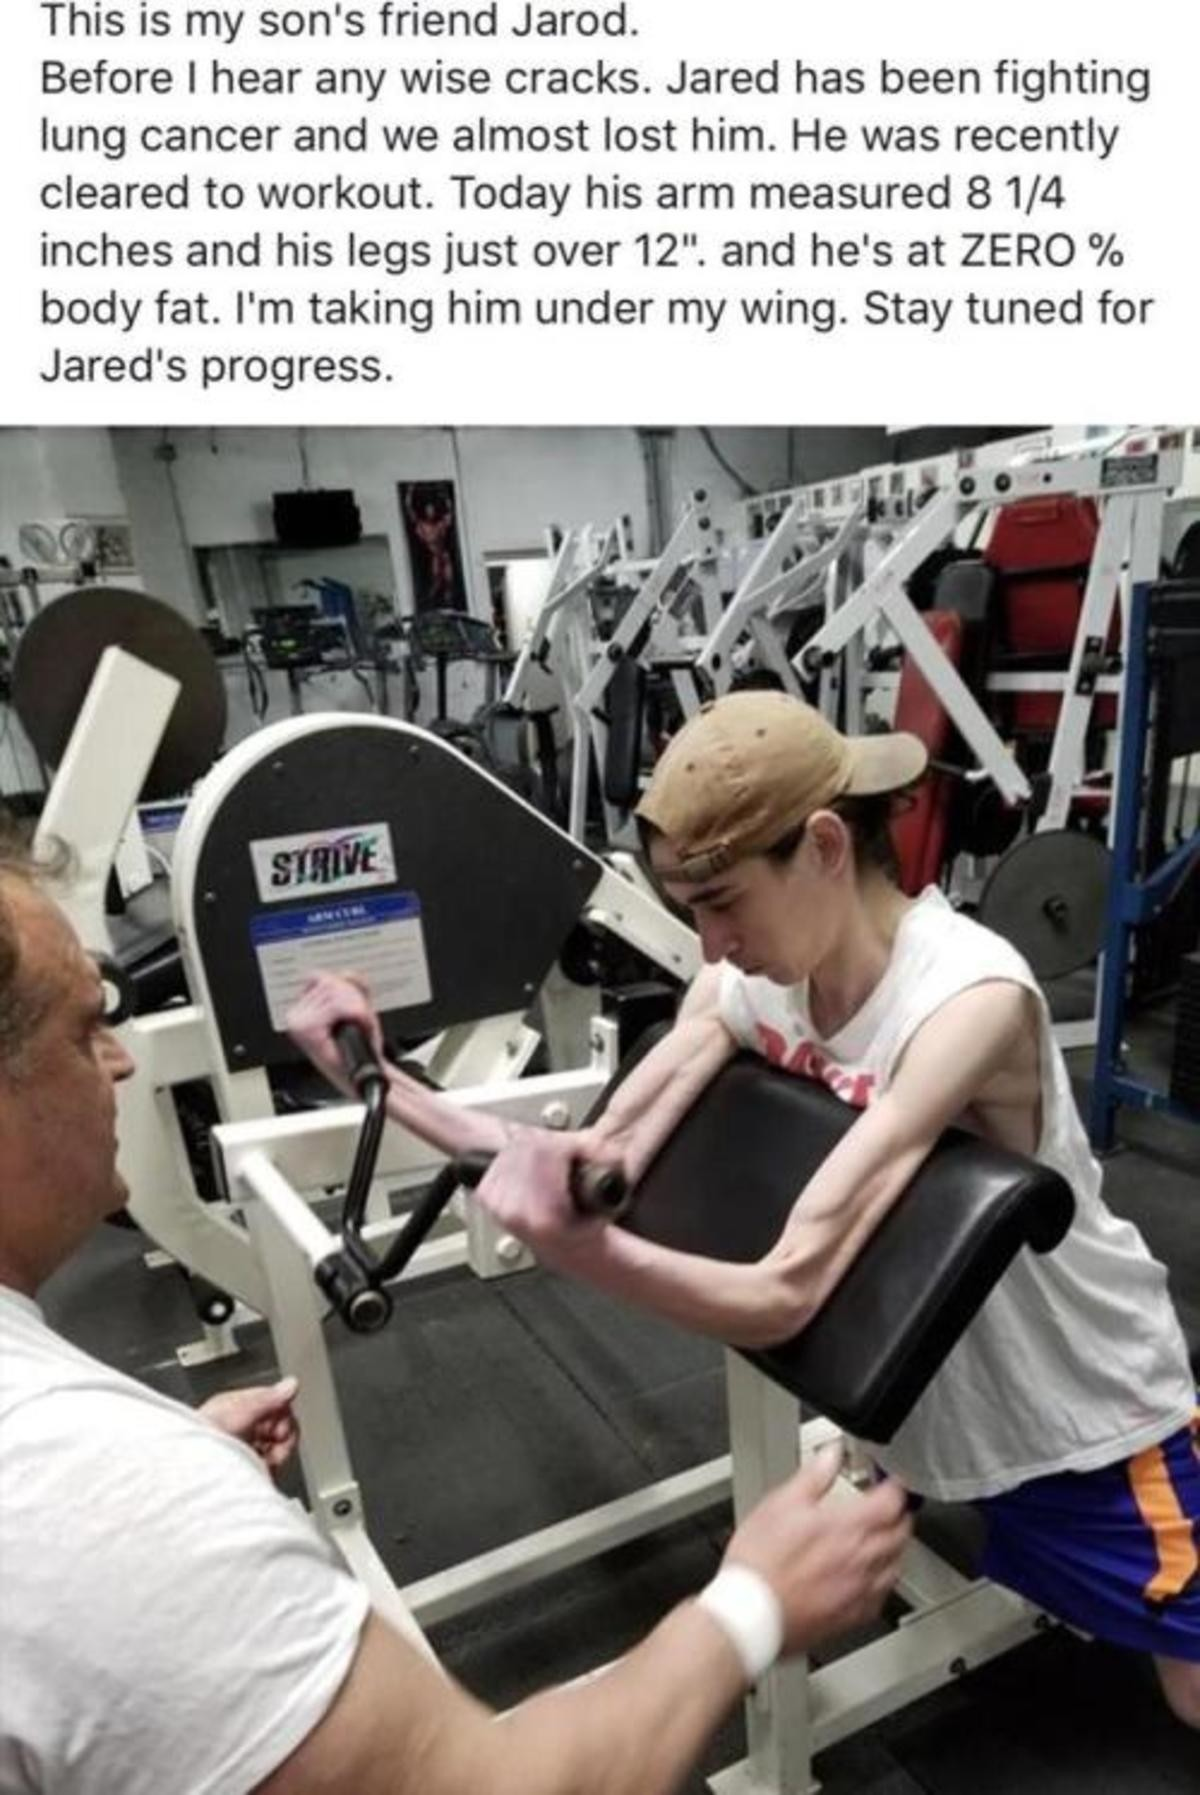 Fighting spirit. No matter how much i lift, i dont think il ever be as strong as this guy. join list: HappyThoughts (1573 subs)Mention History. This is my son'